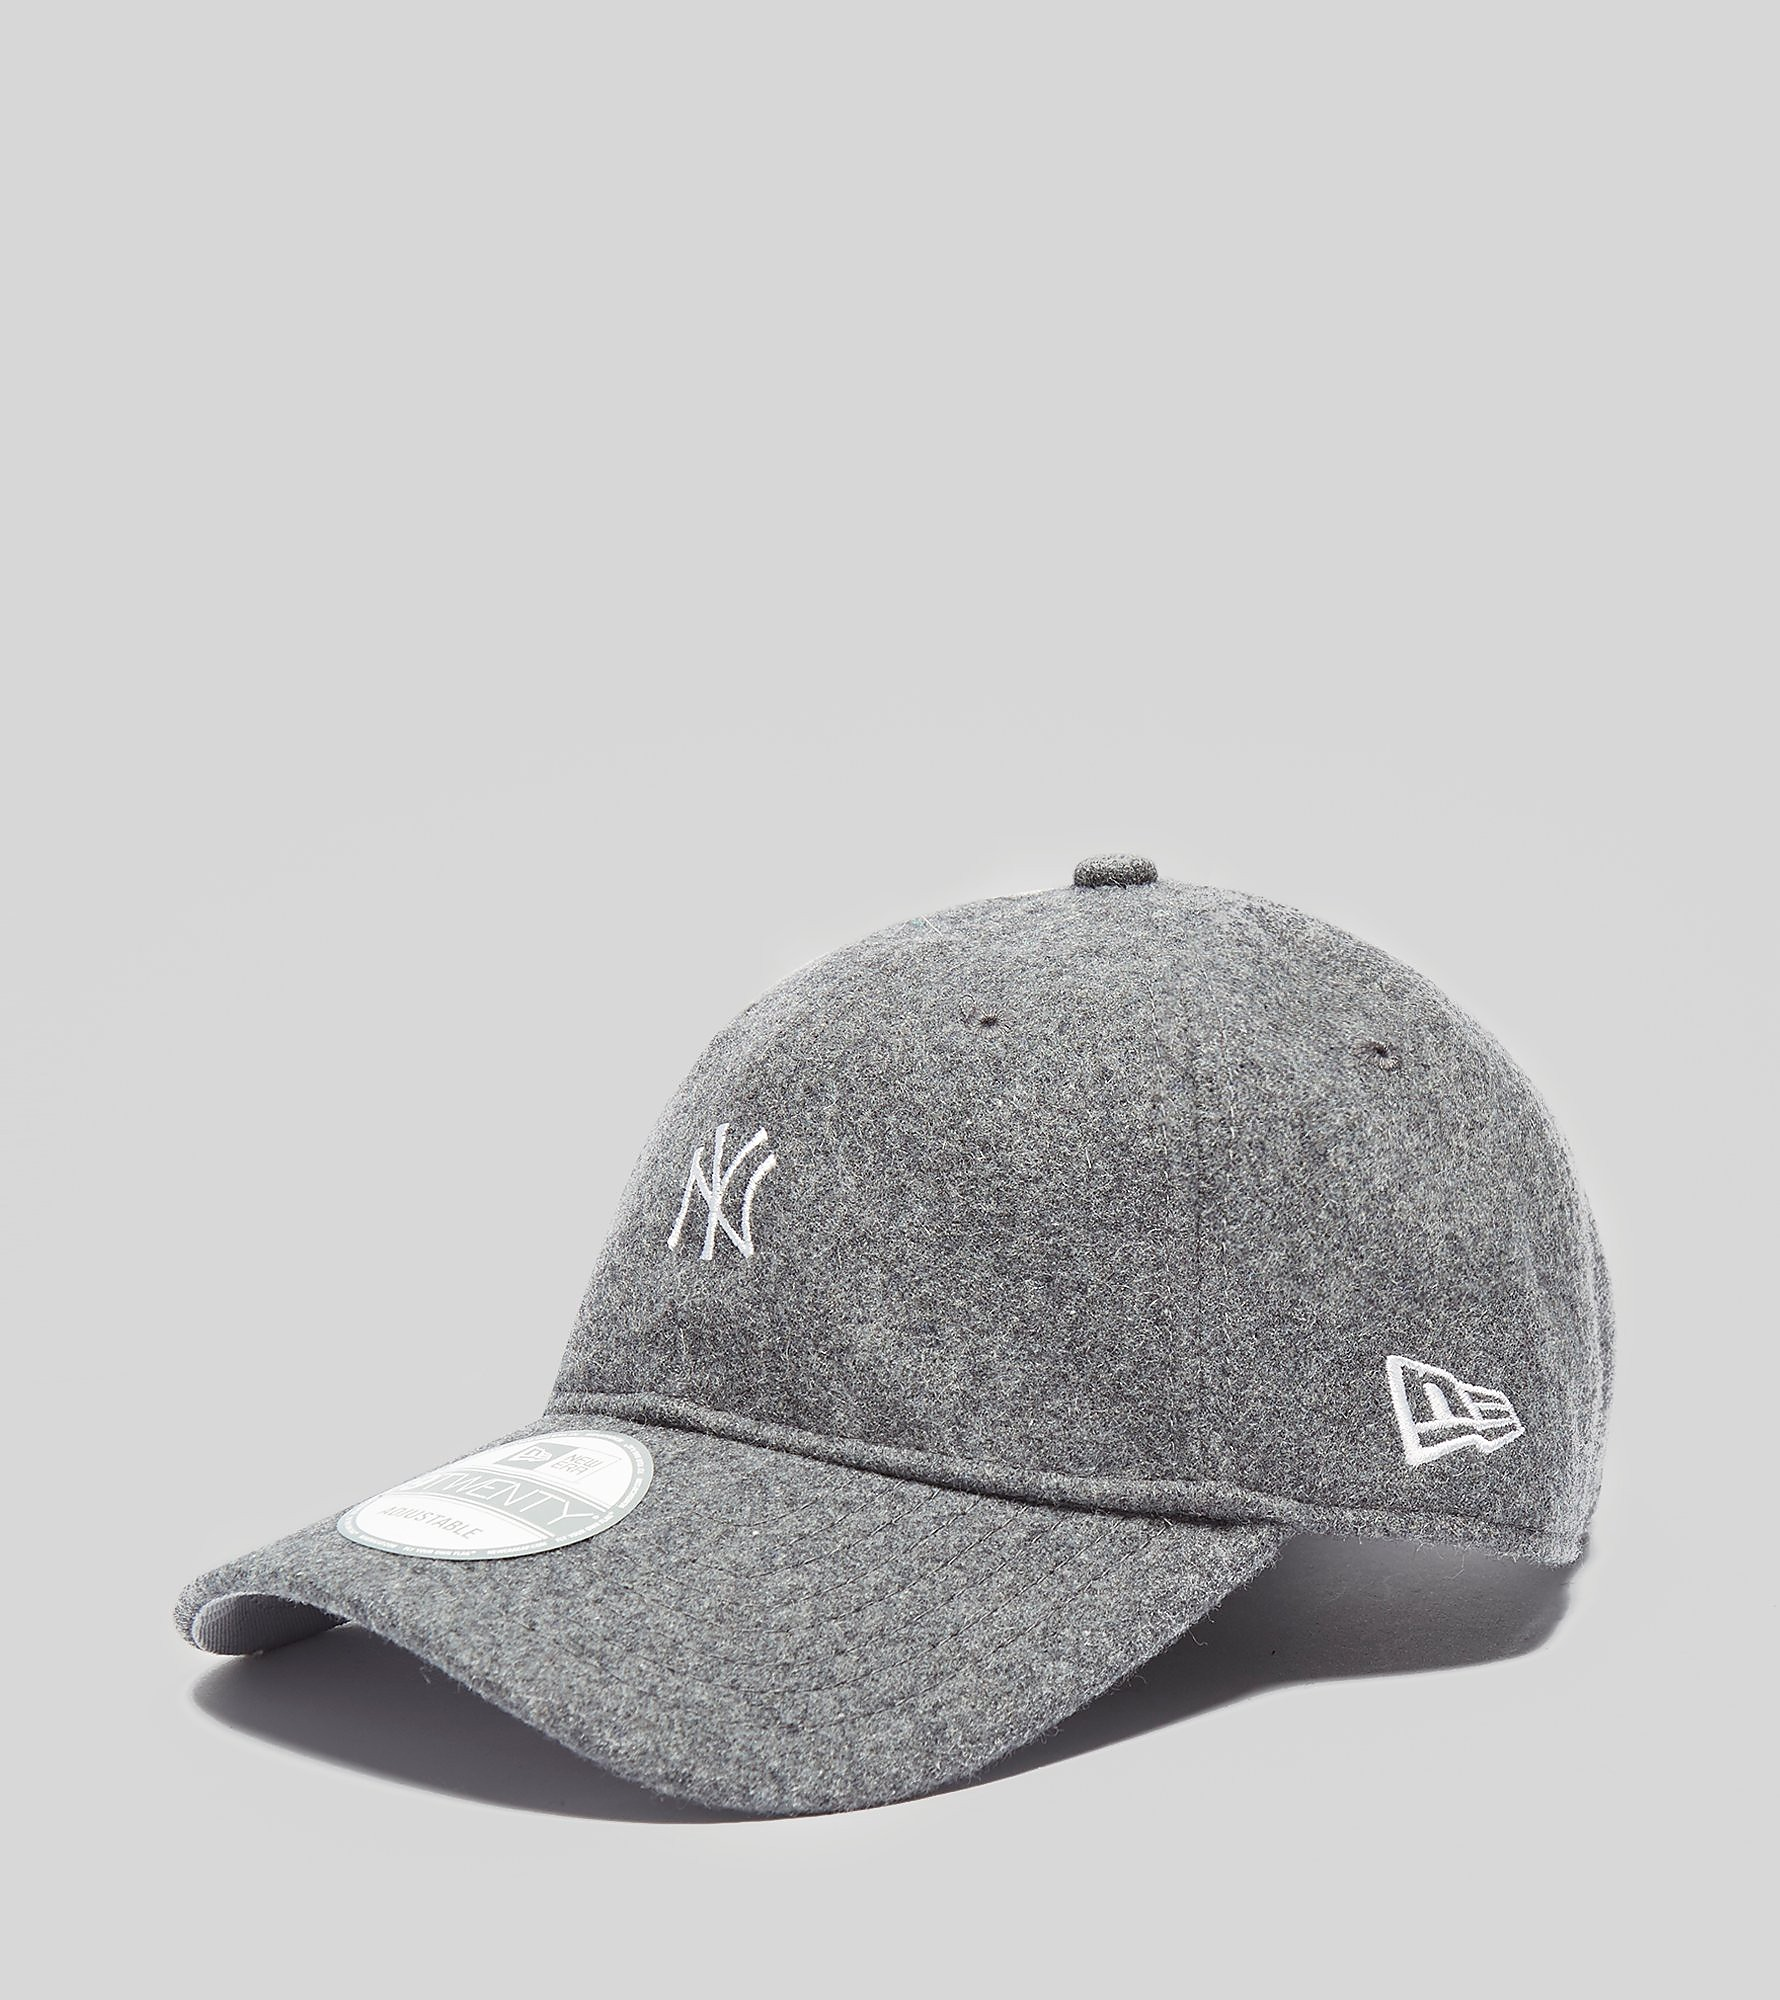 New Era 9TWENTY MLB Wool Cap